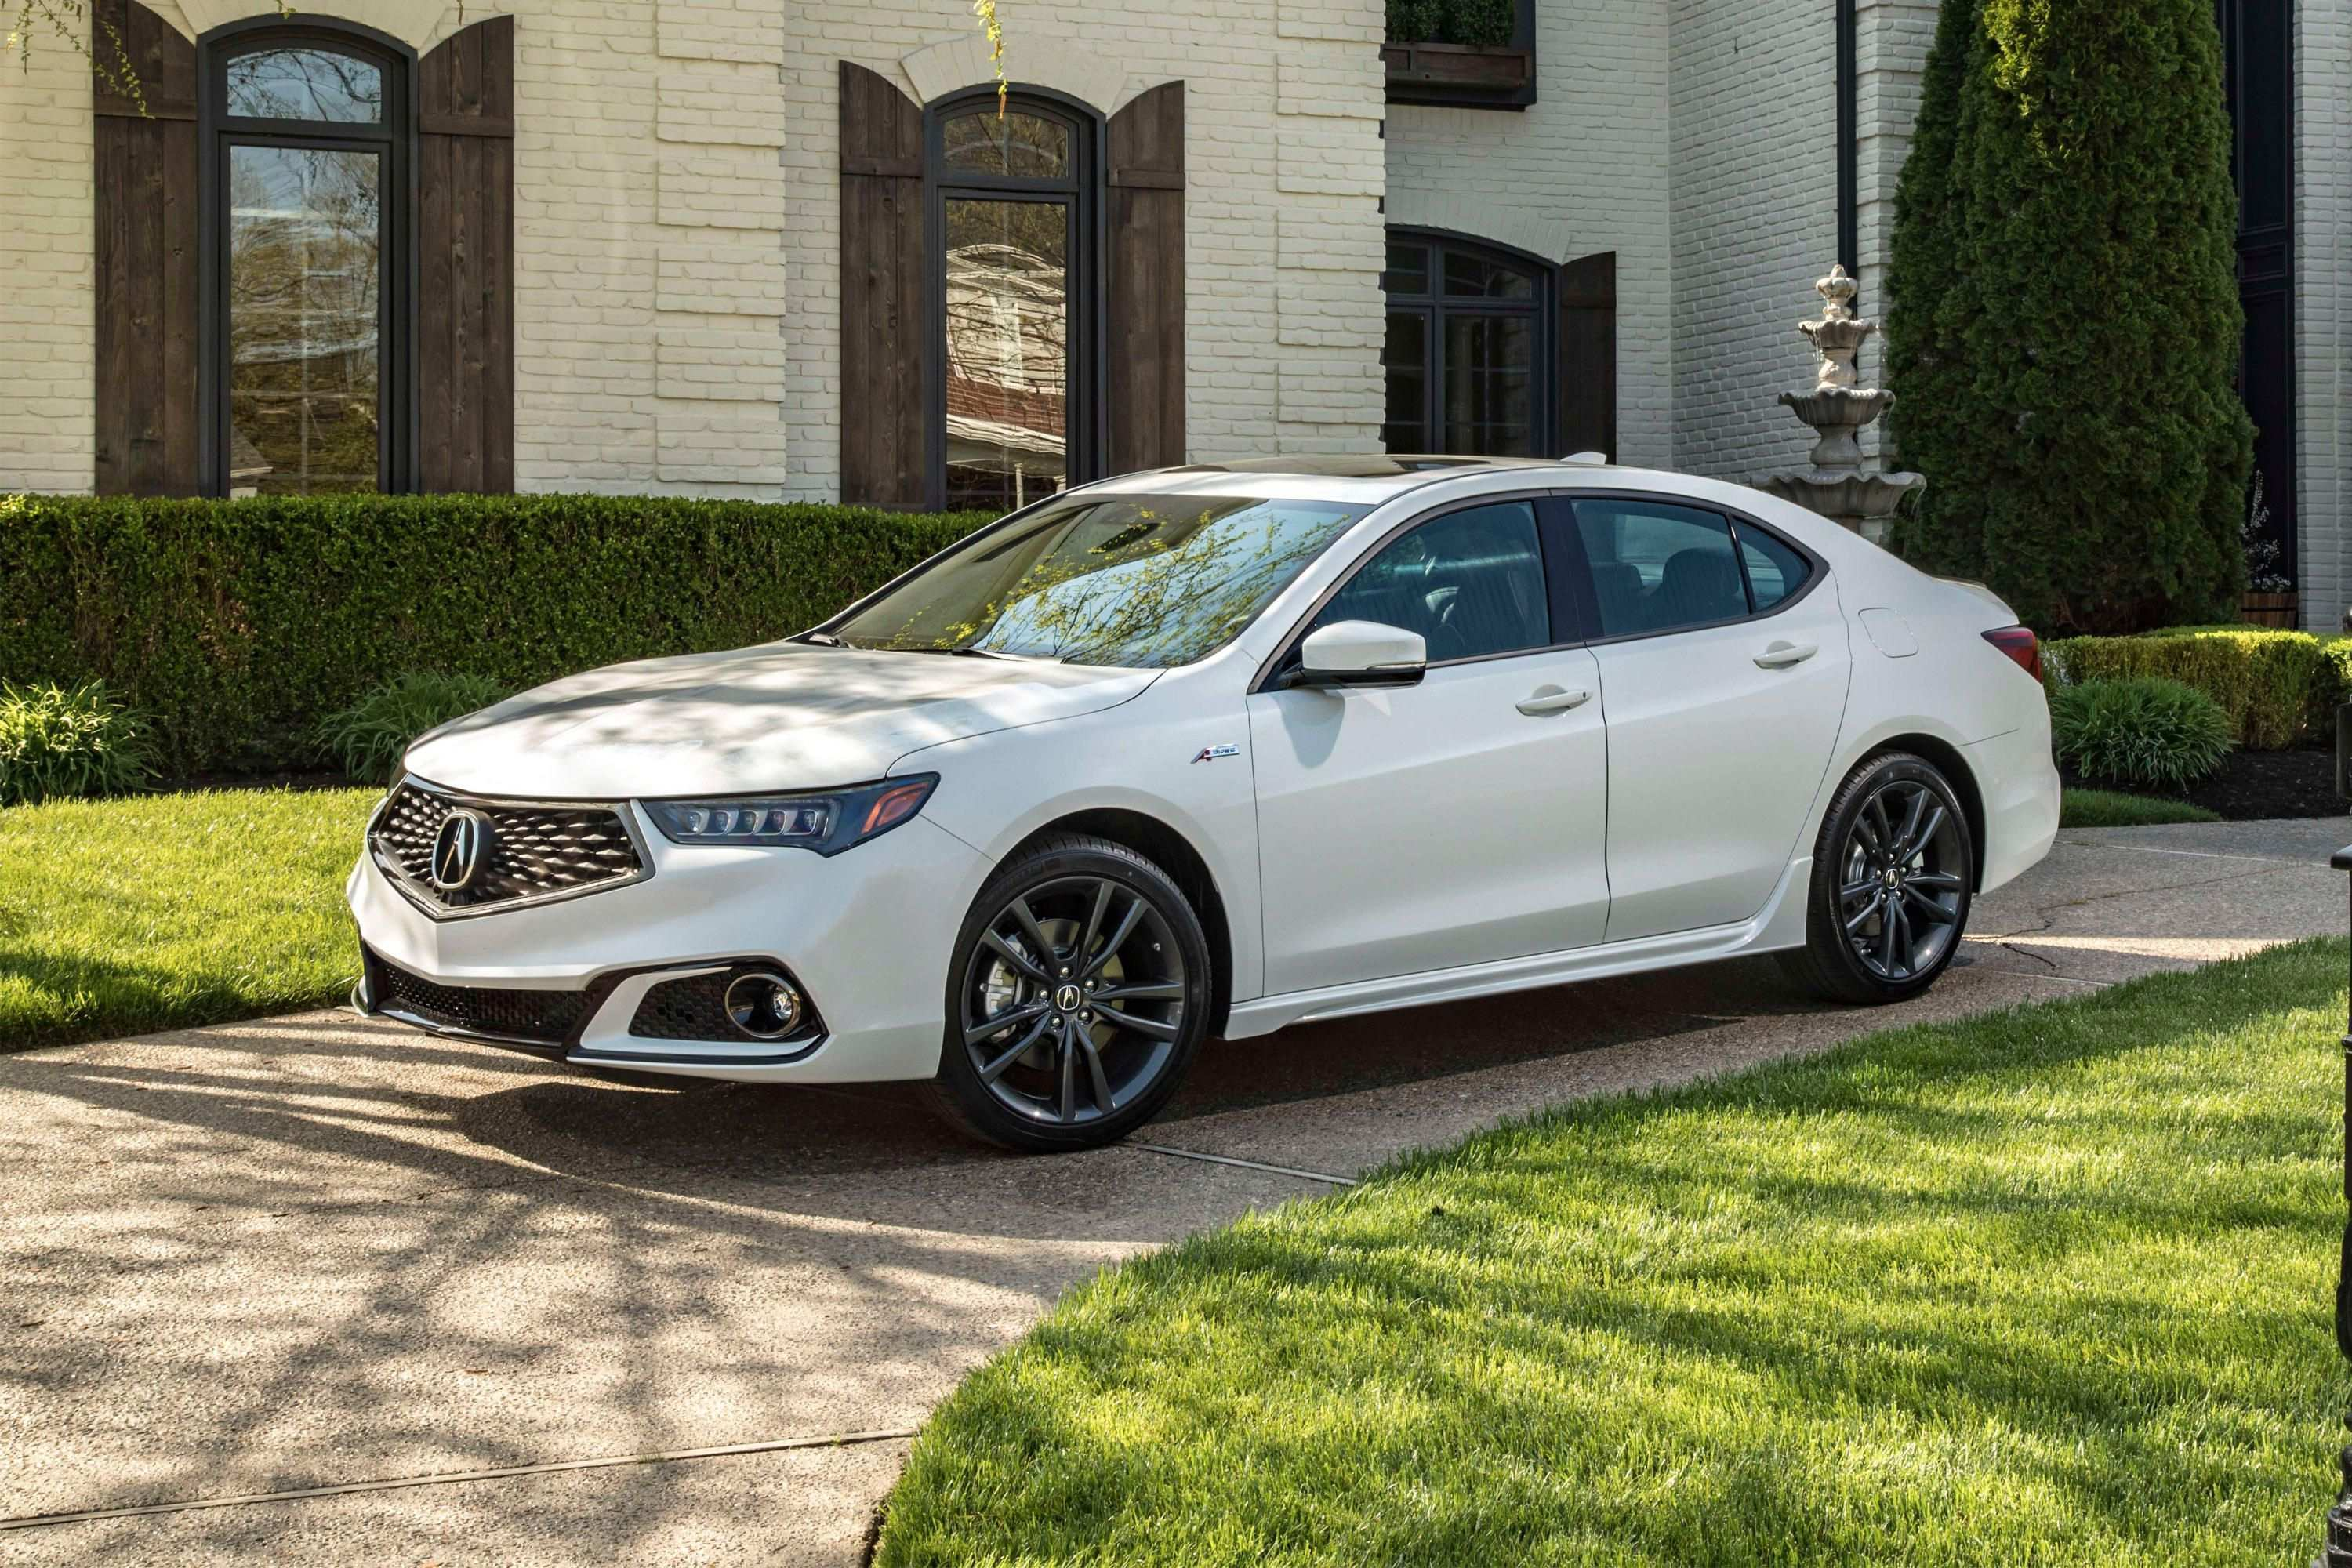 28 New 2019 Acura Tlx Rumors Release for 2019 Acura Tlx Rumors